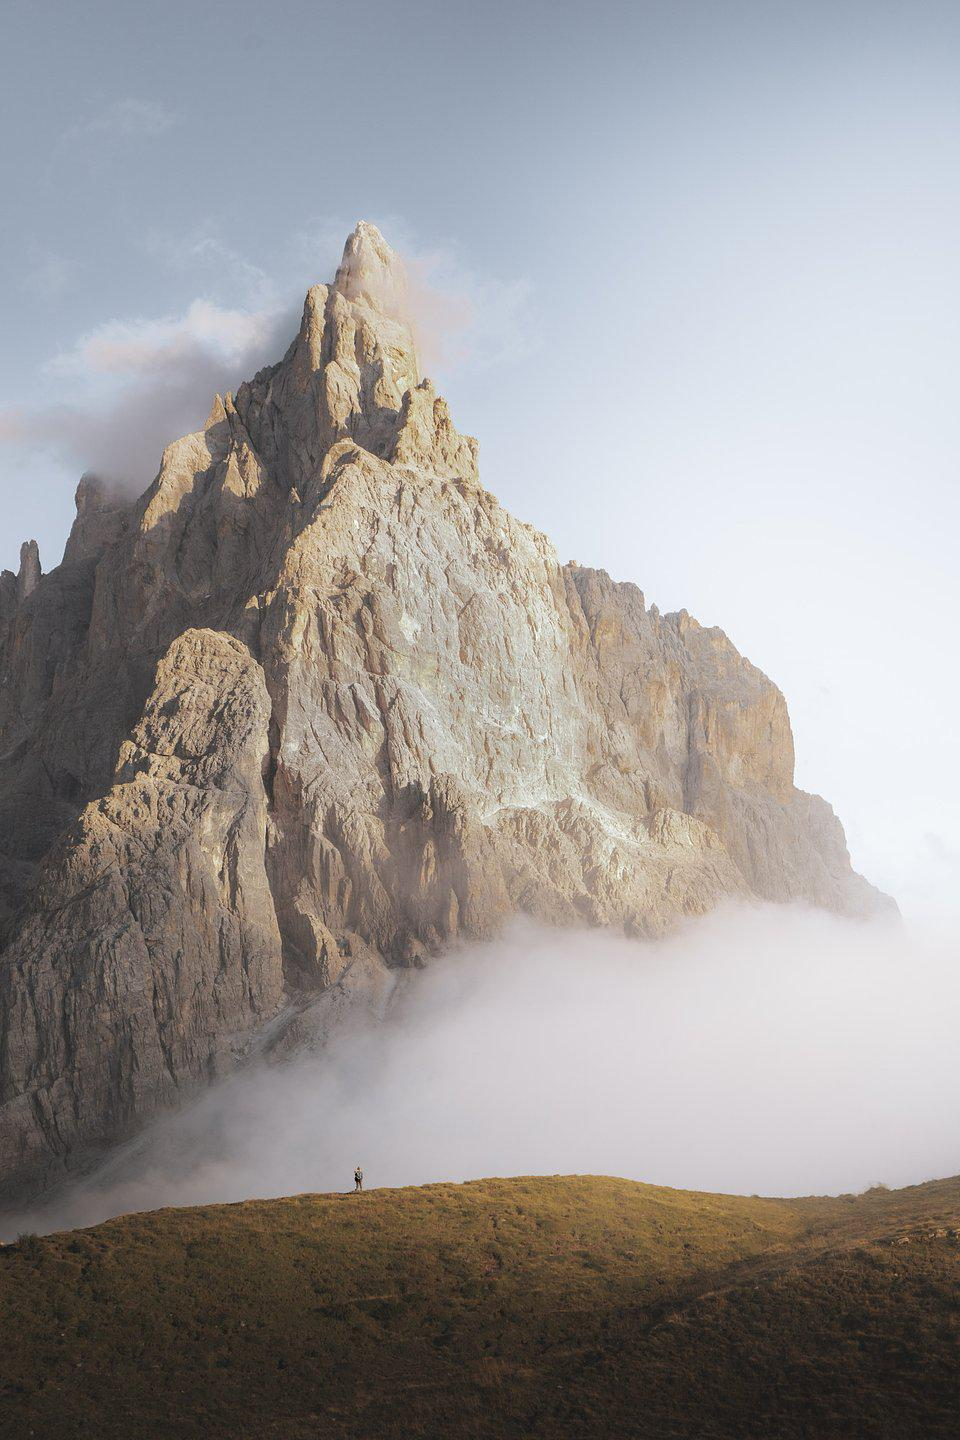 A small figure walking along an immense Dolomite Mountain ridge.